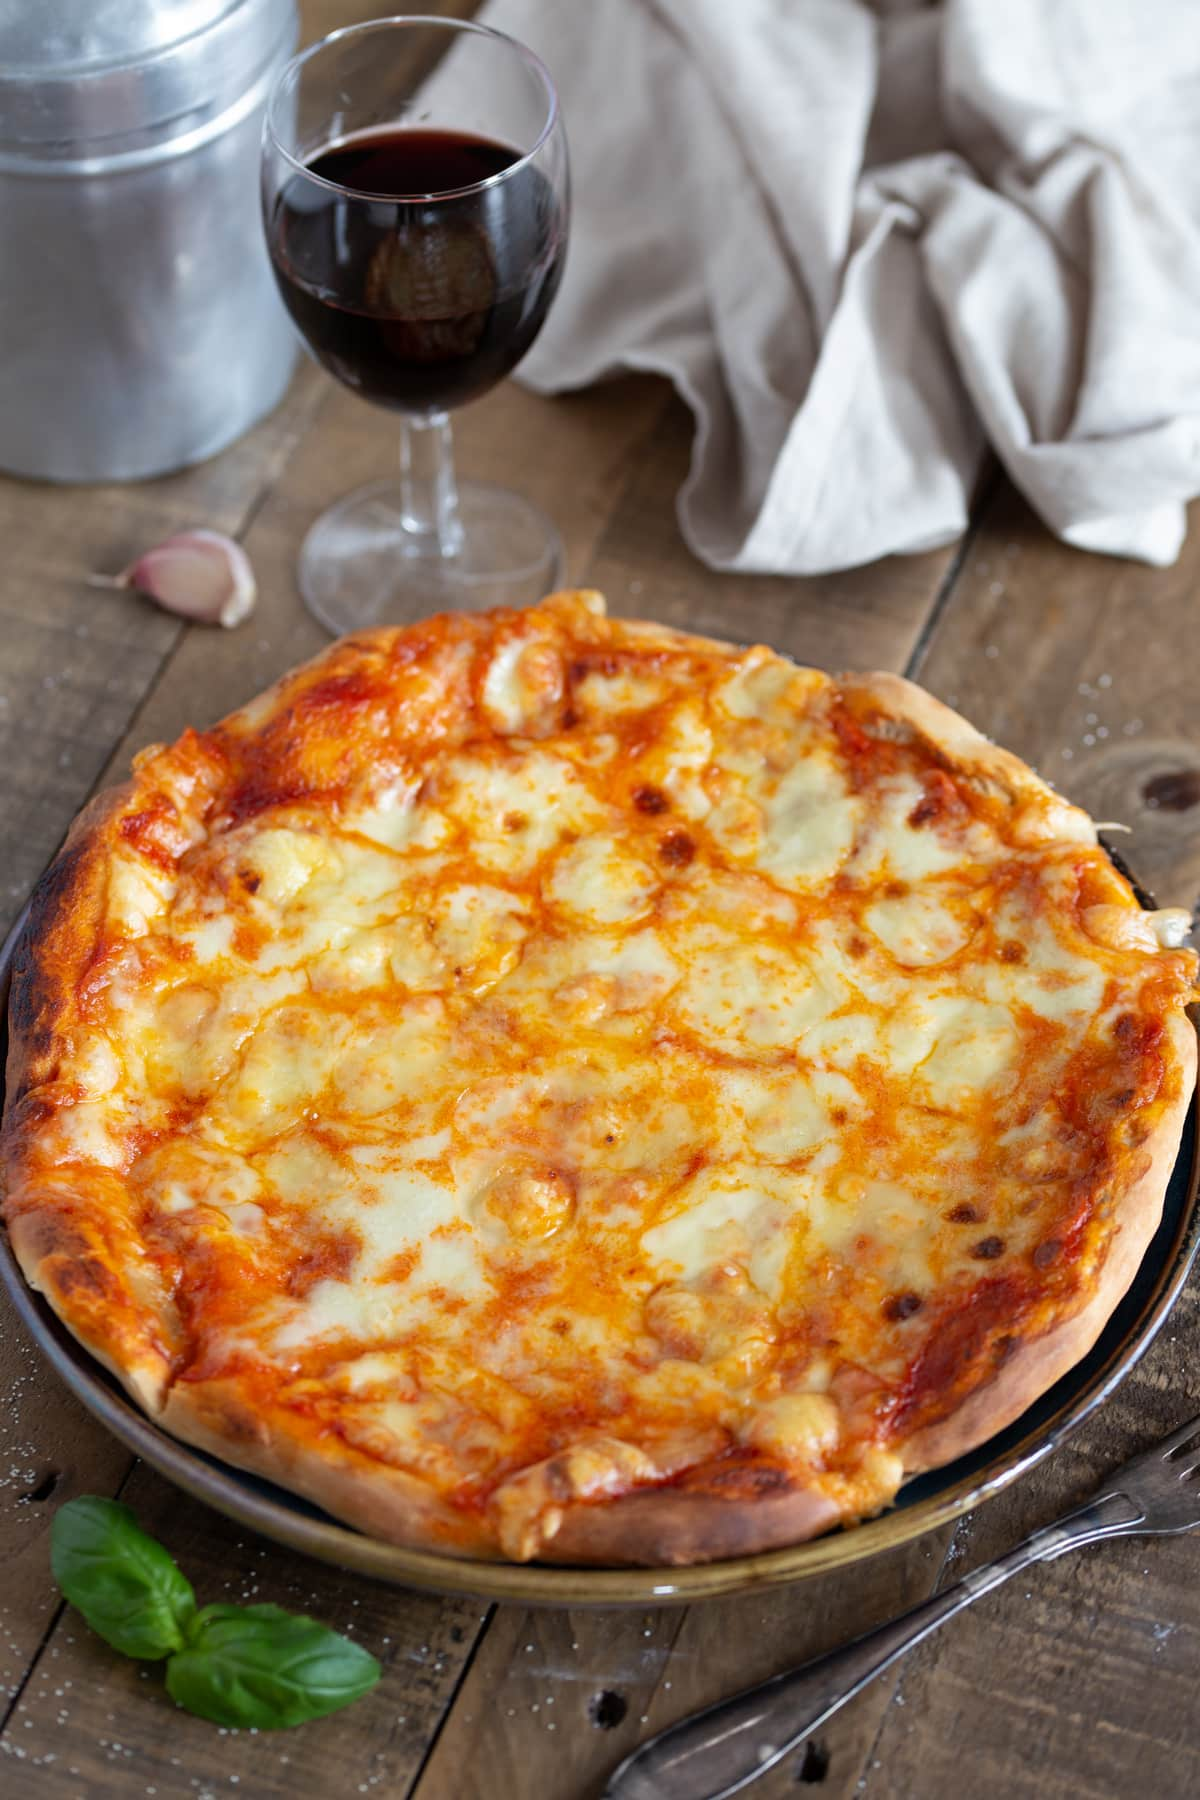 Cheese pizza served with a glass of red wine.